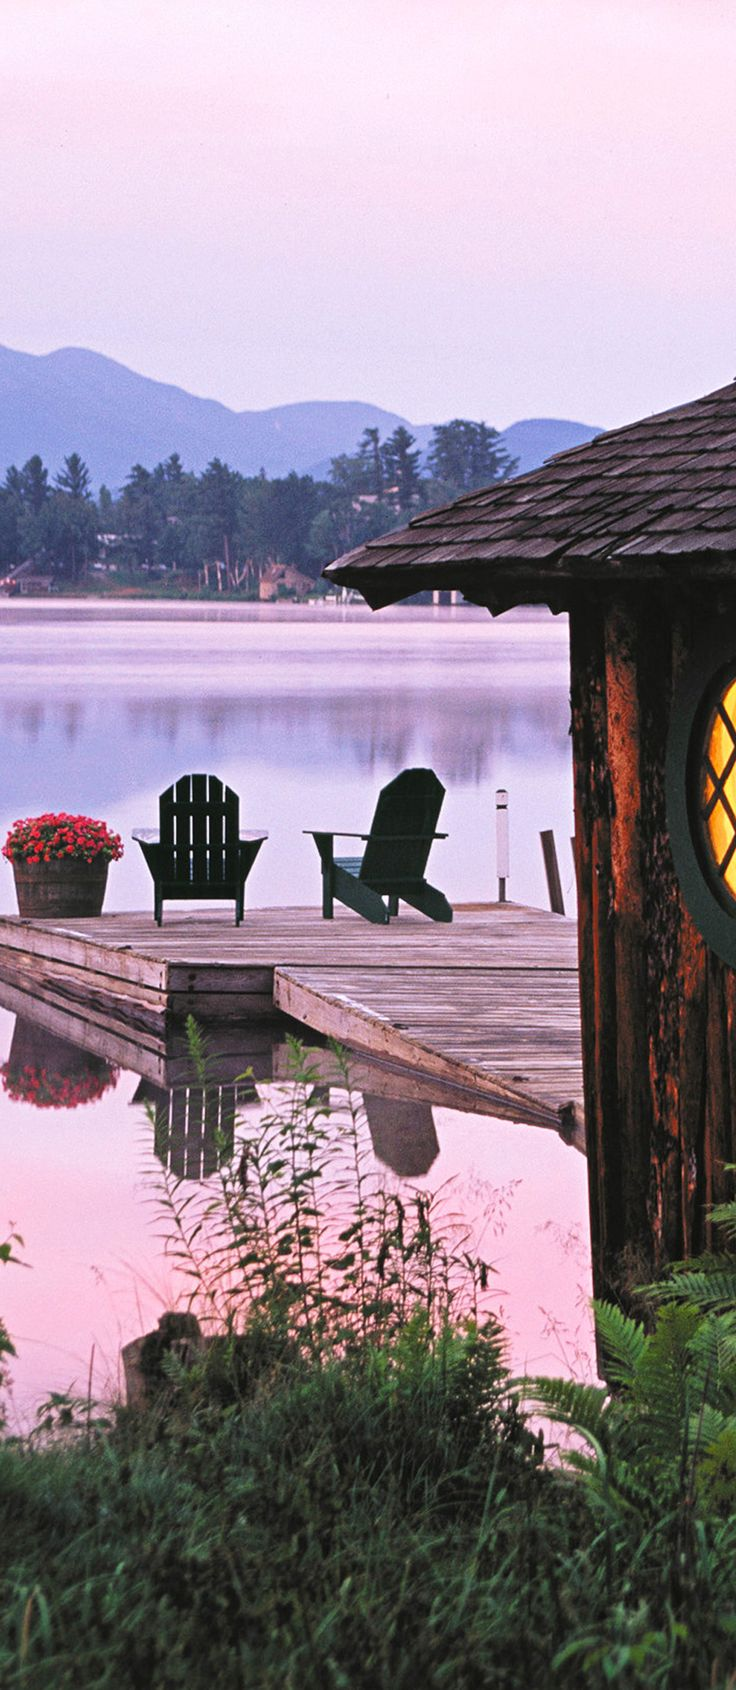 Enjoy relaxing outdoors in Lake Placid, NY where I would love to spend a day and relax